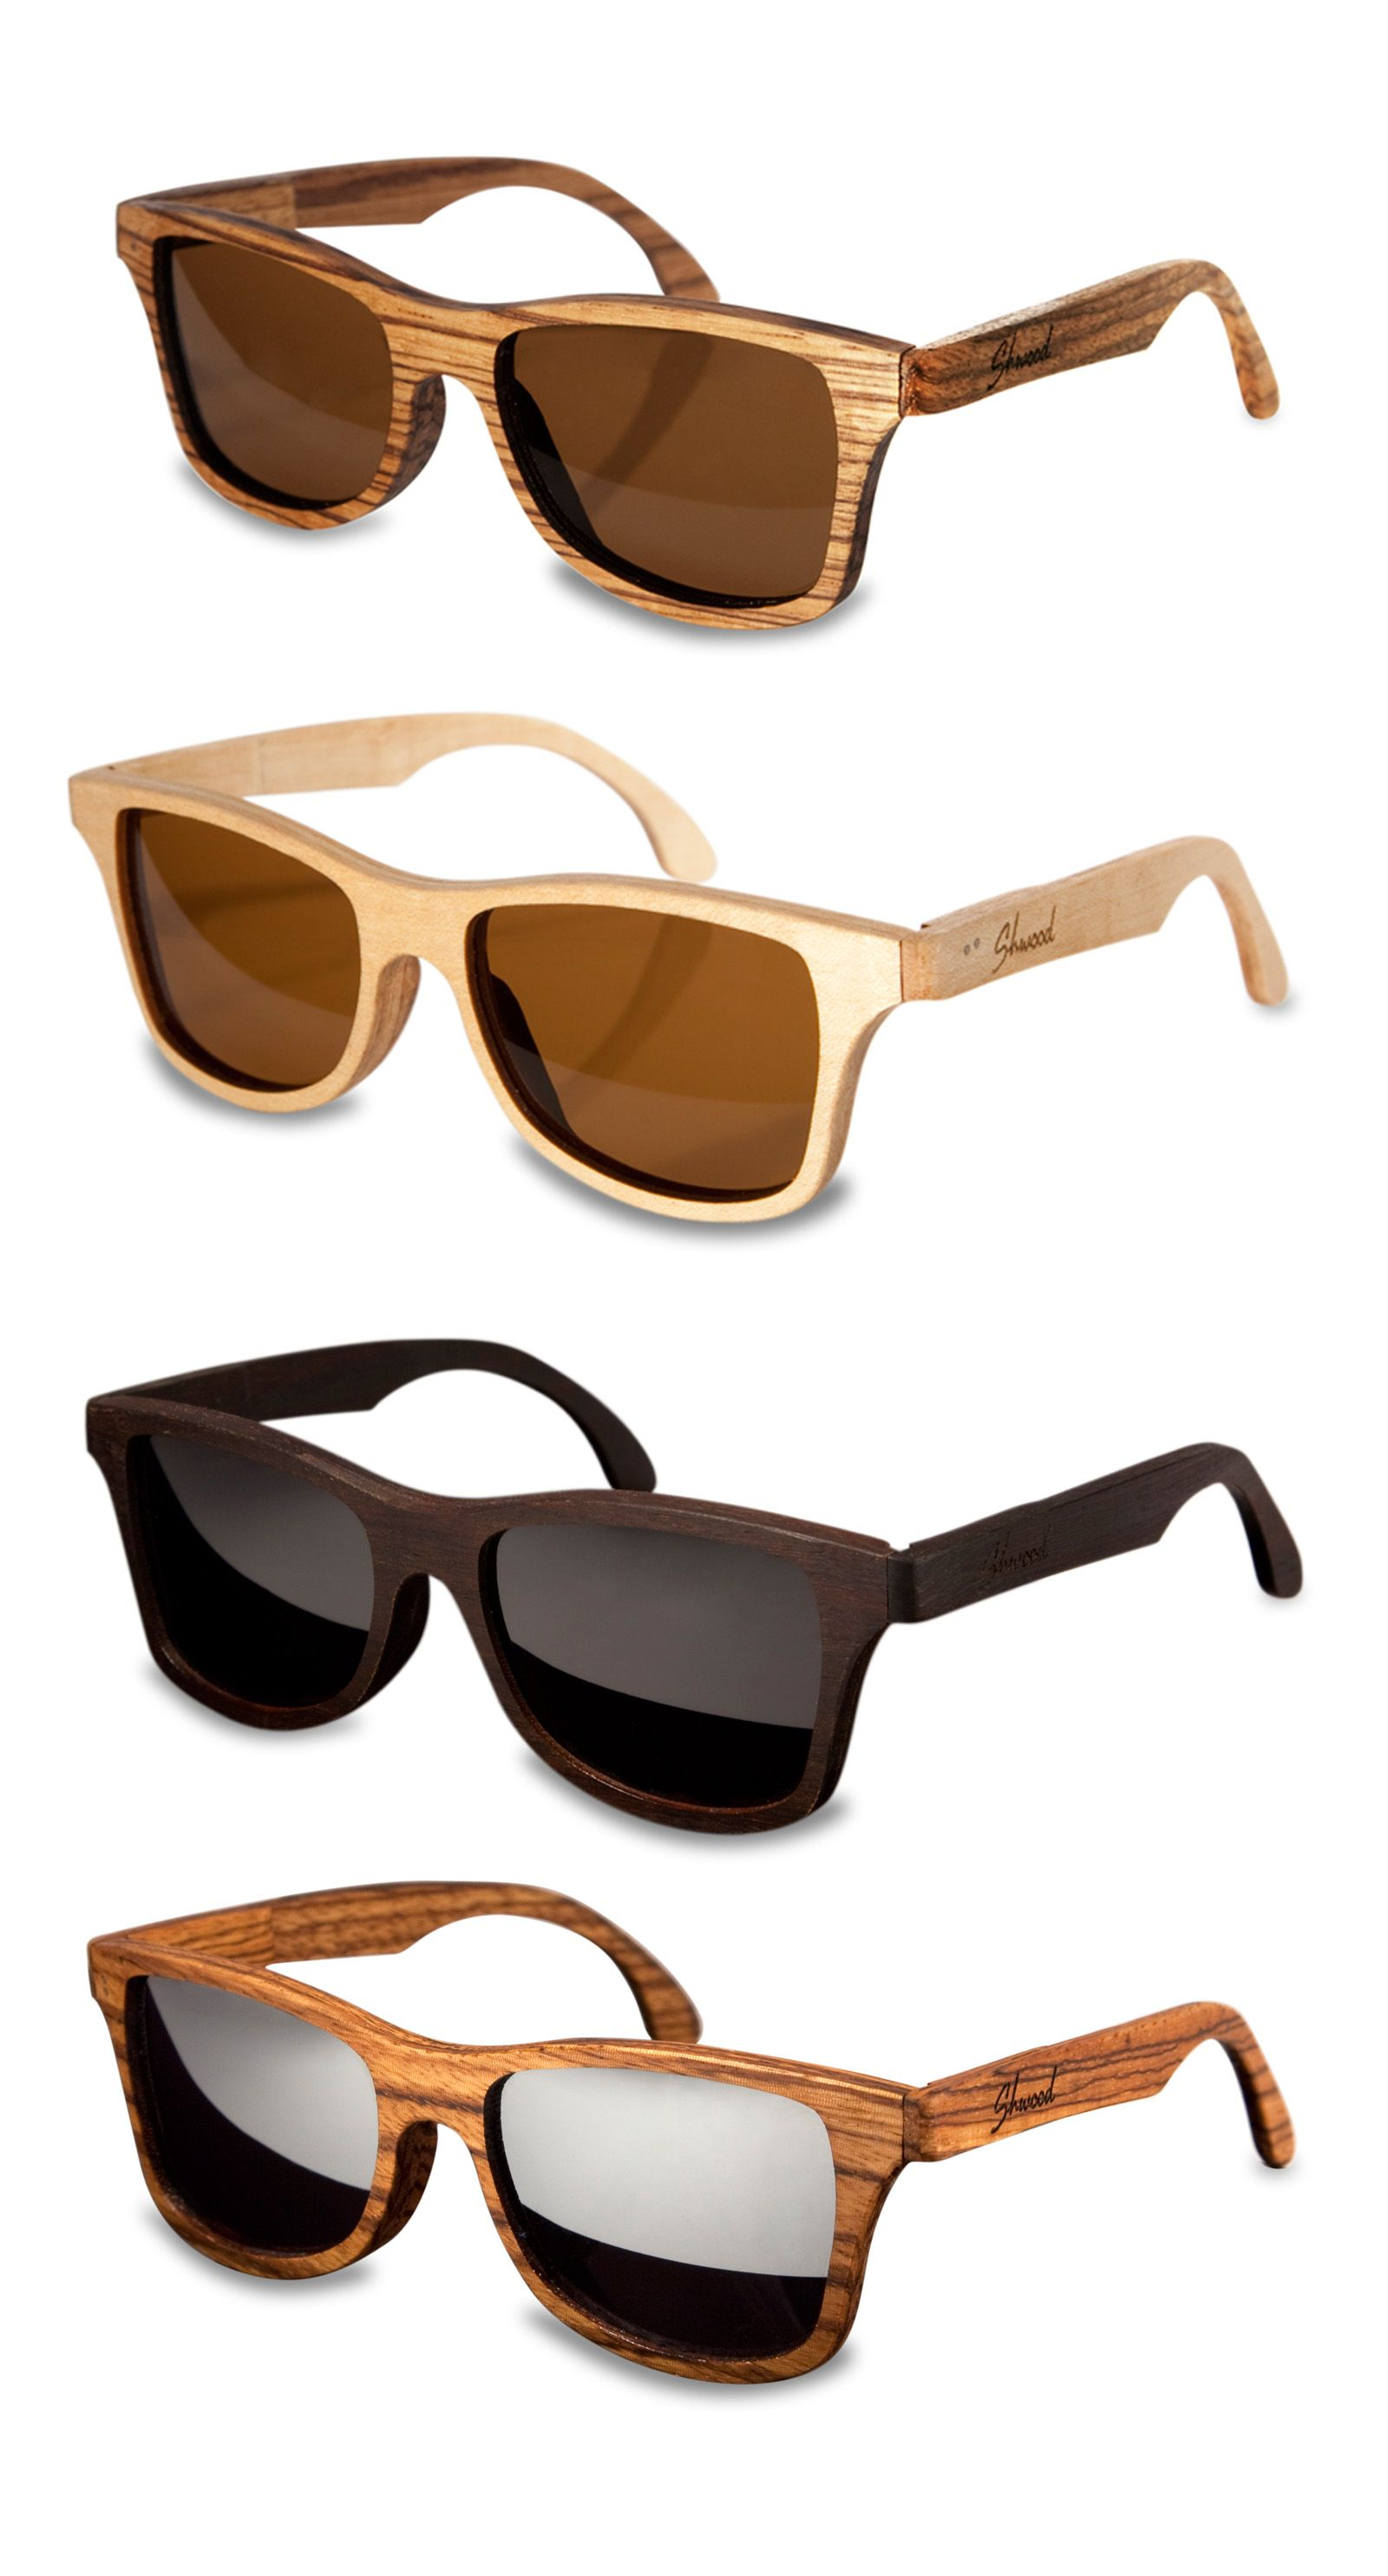 Wood Sunglasses   Nice Eyes   Pinterest   Sunglasses, Ray ban ... 499c9132fd